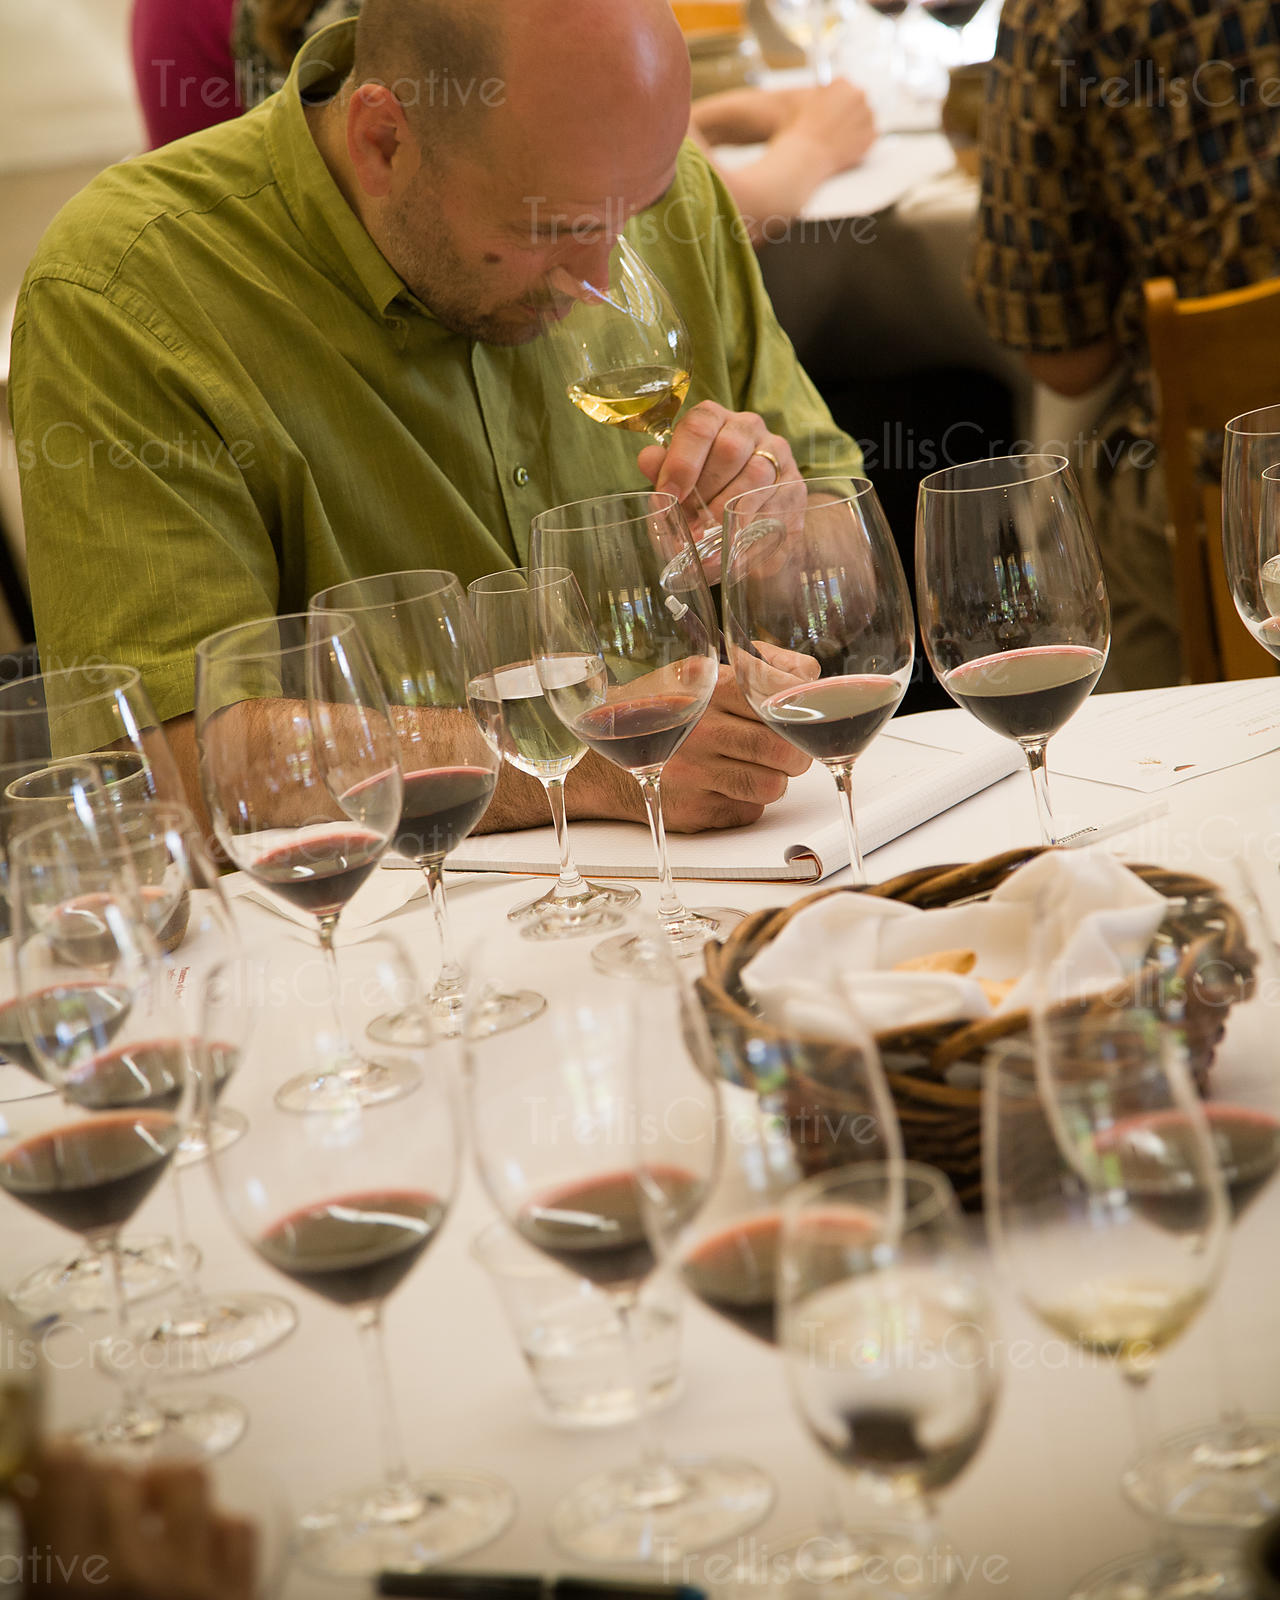 Man in green shirt tasting red wines has nose in glass, making notes, surrounded by glasses.